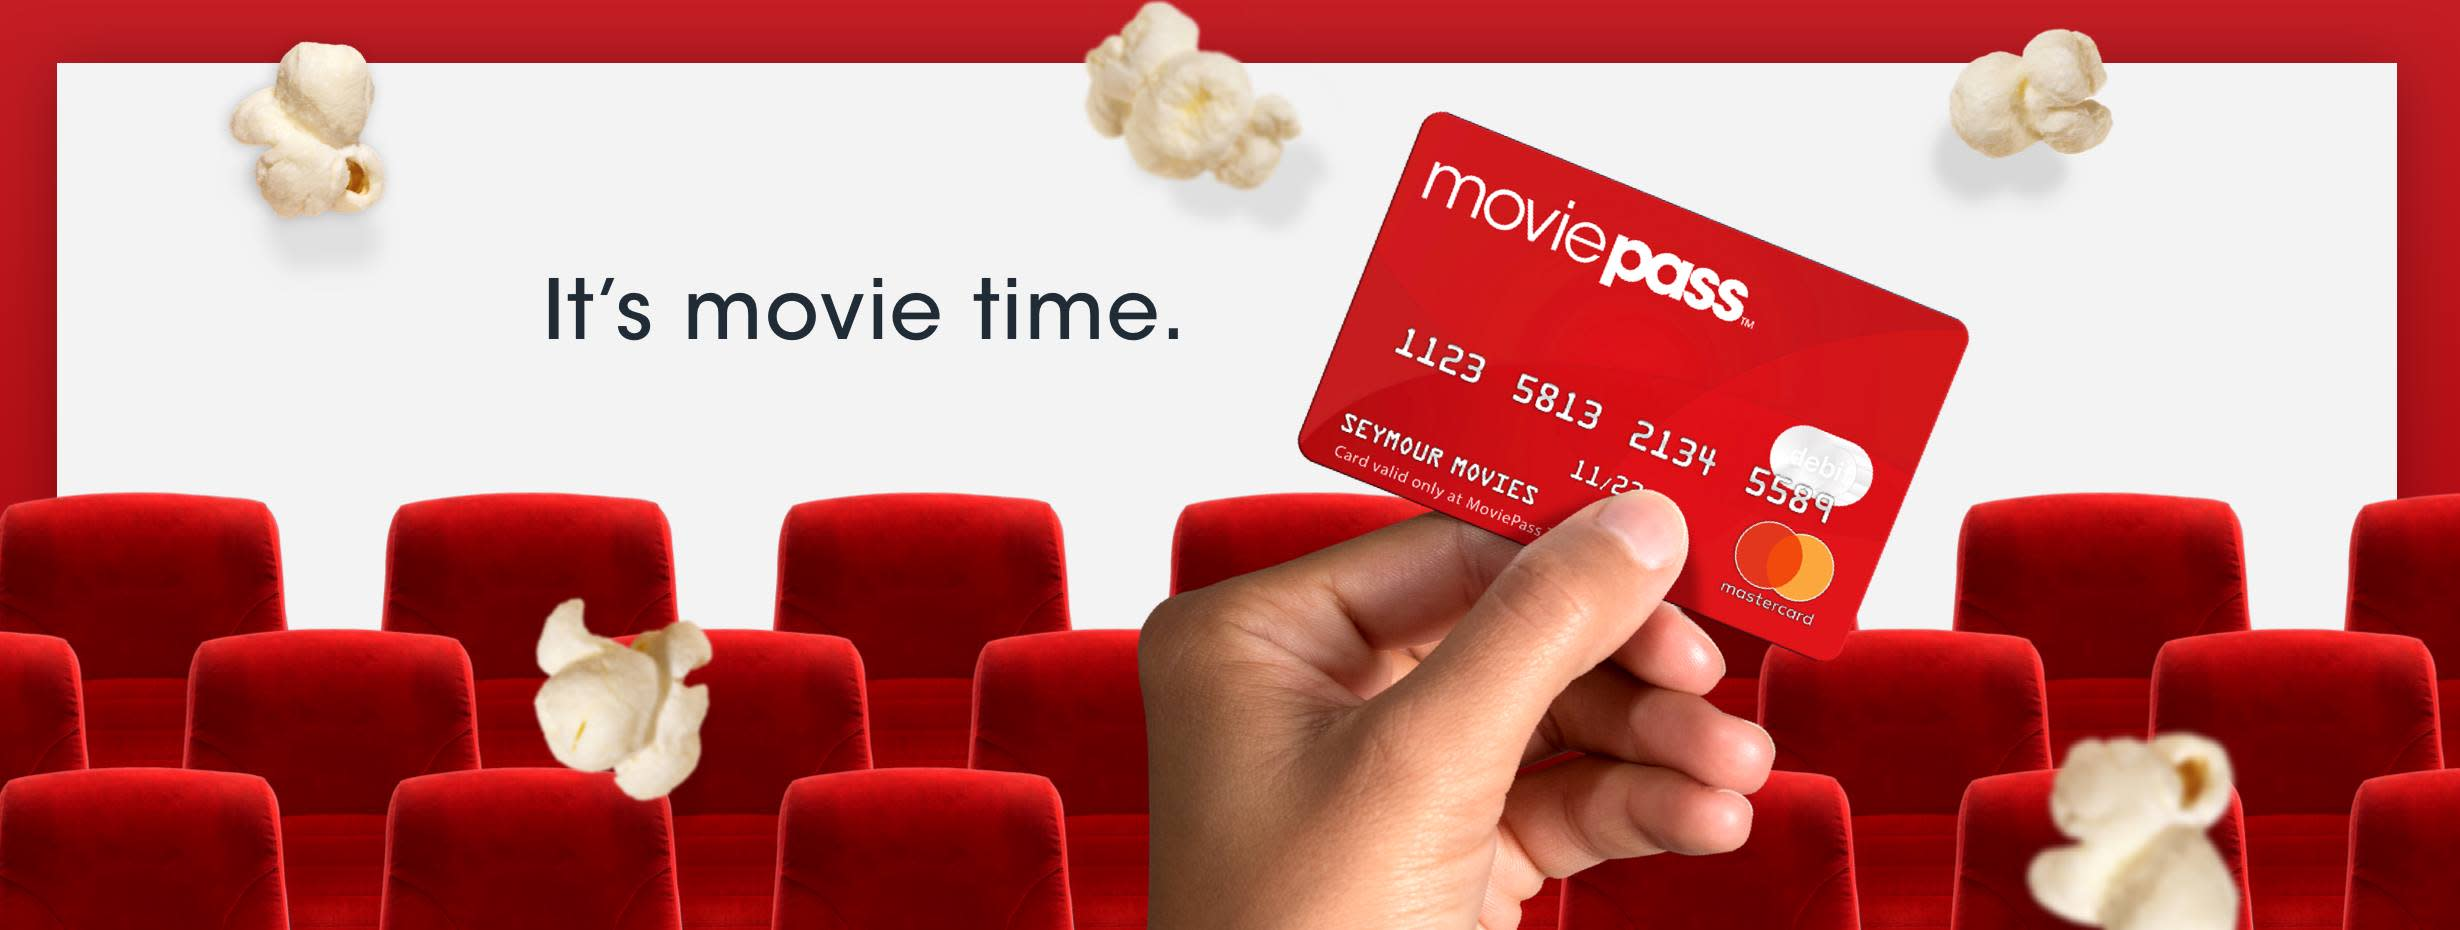 Is This the End for MoviePass?